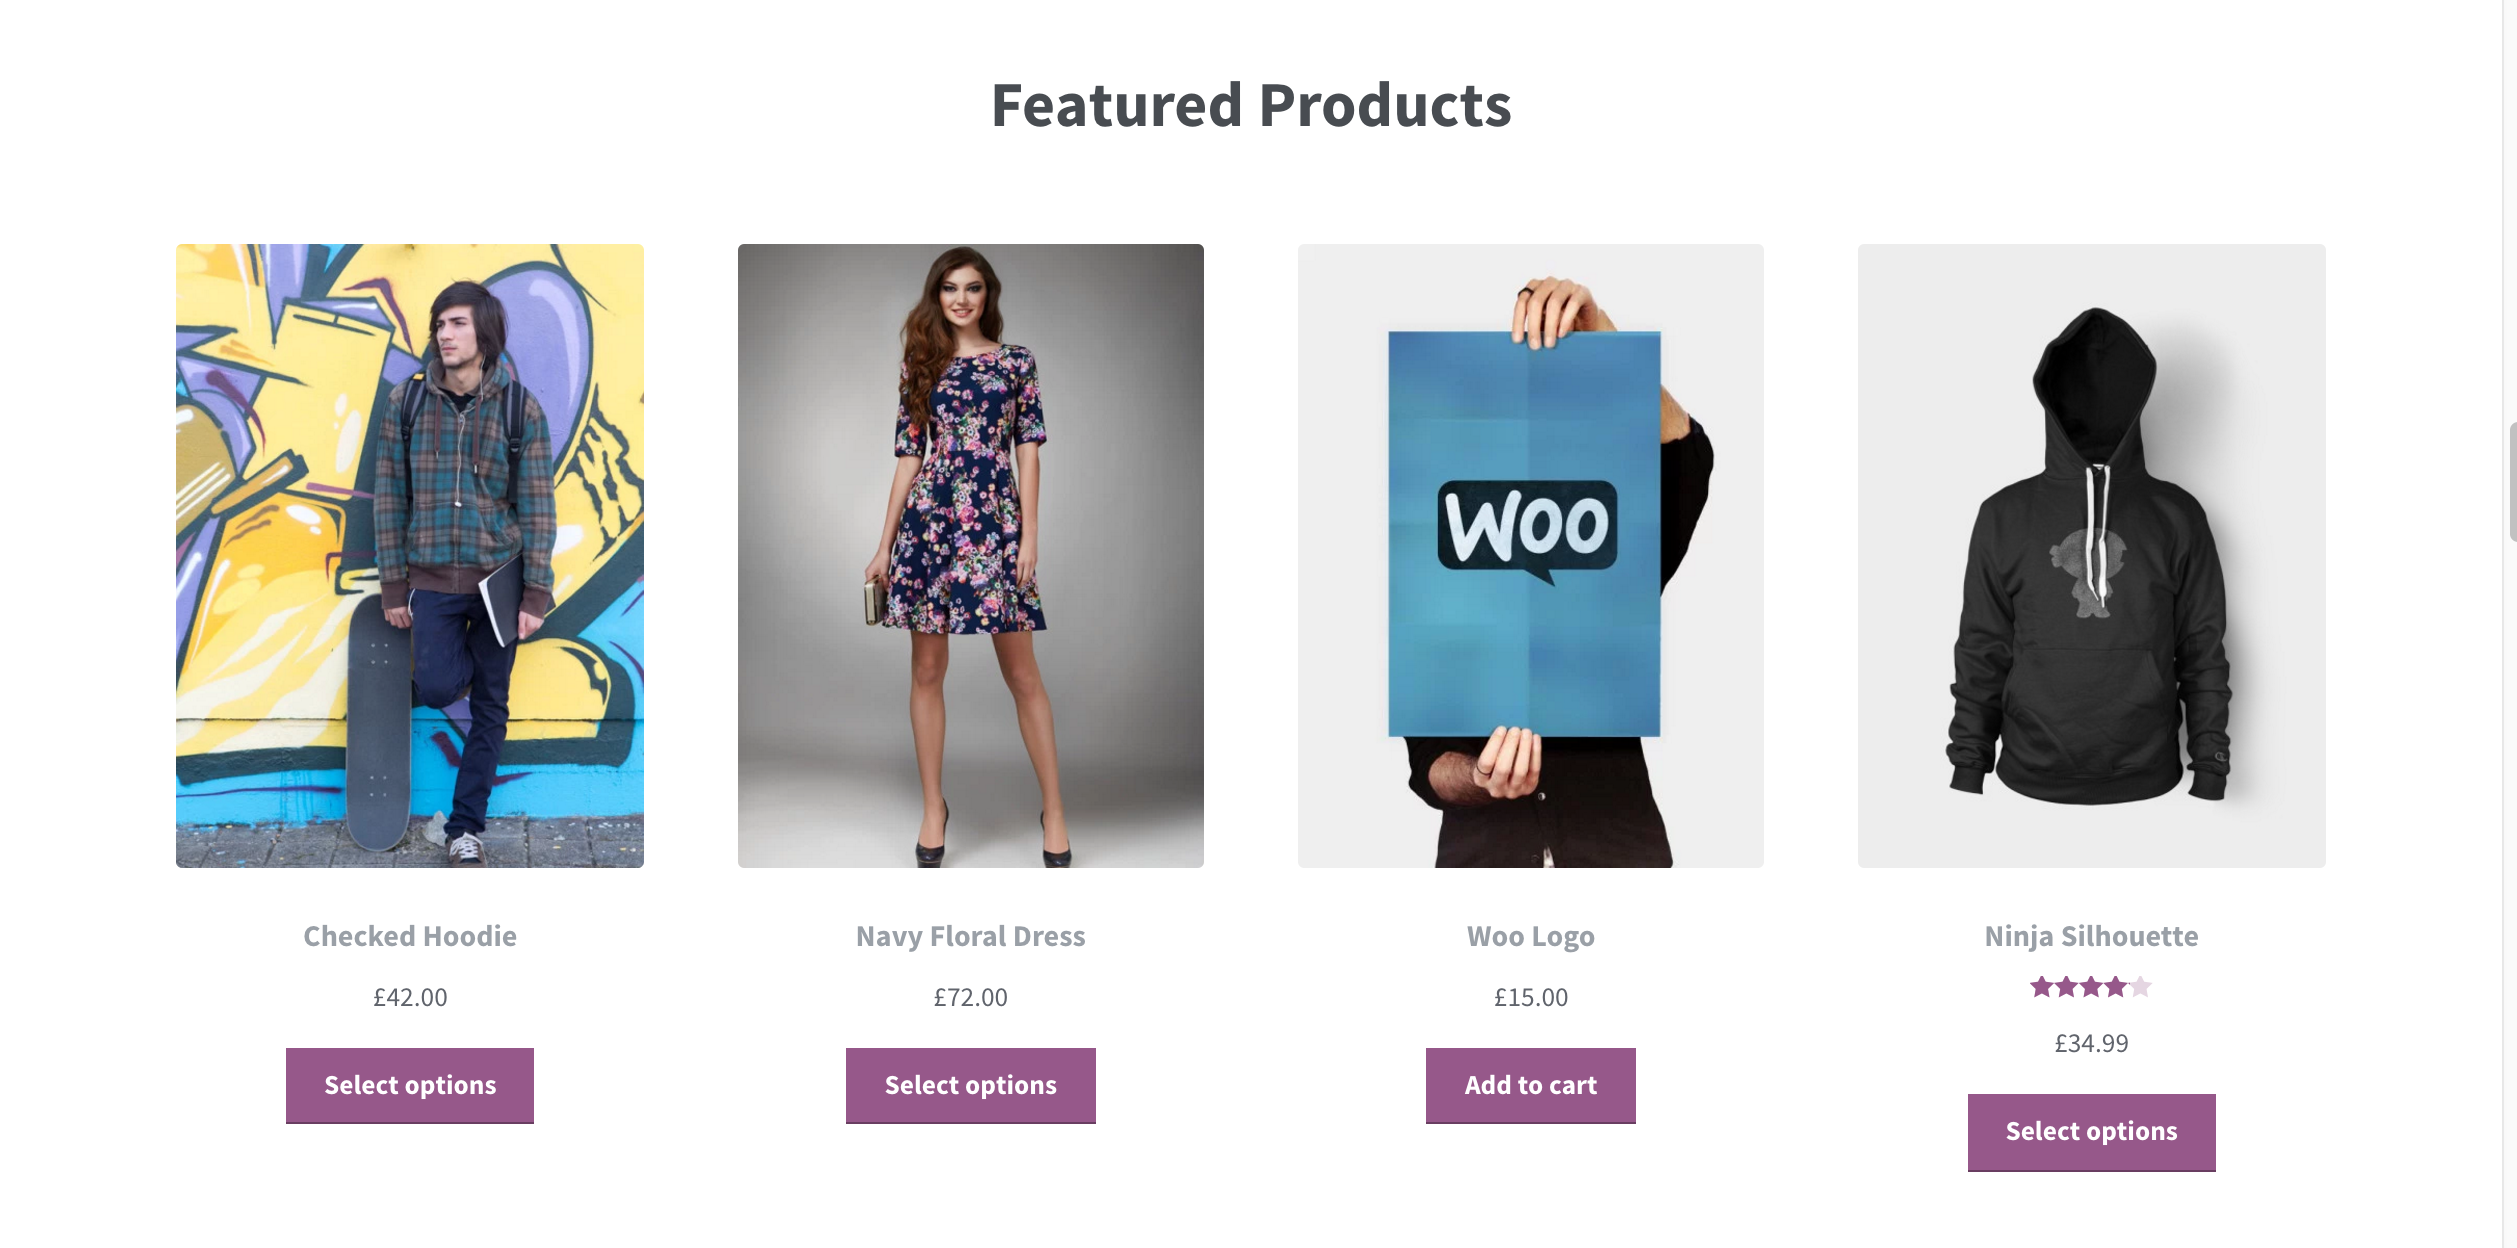 Featured products have their own section in this case, allowing them to be highlighted on the homepage.